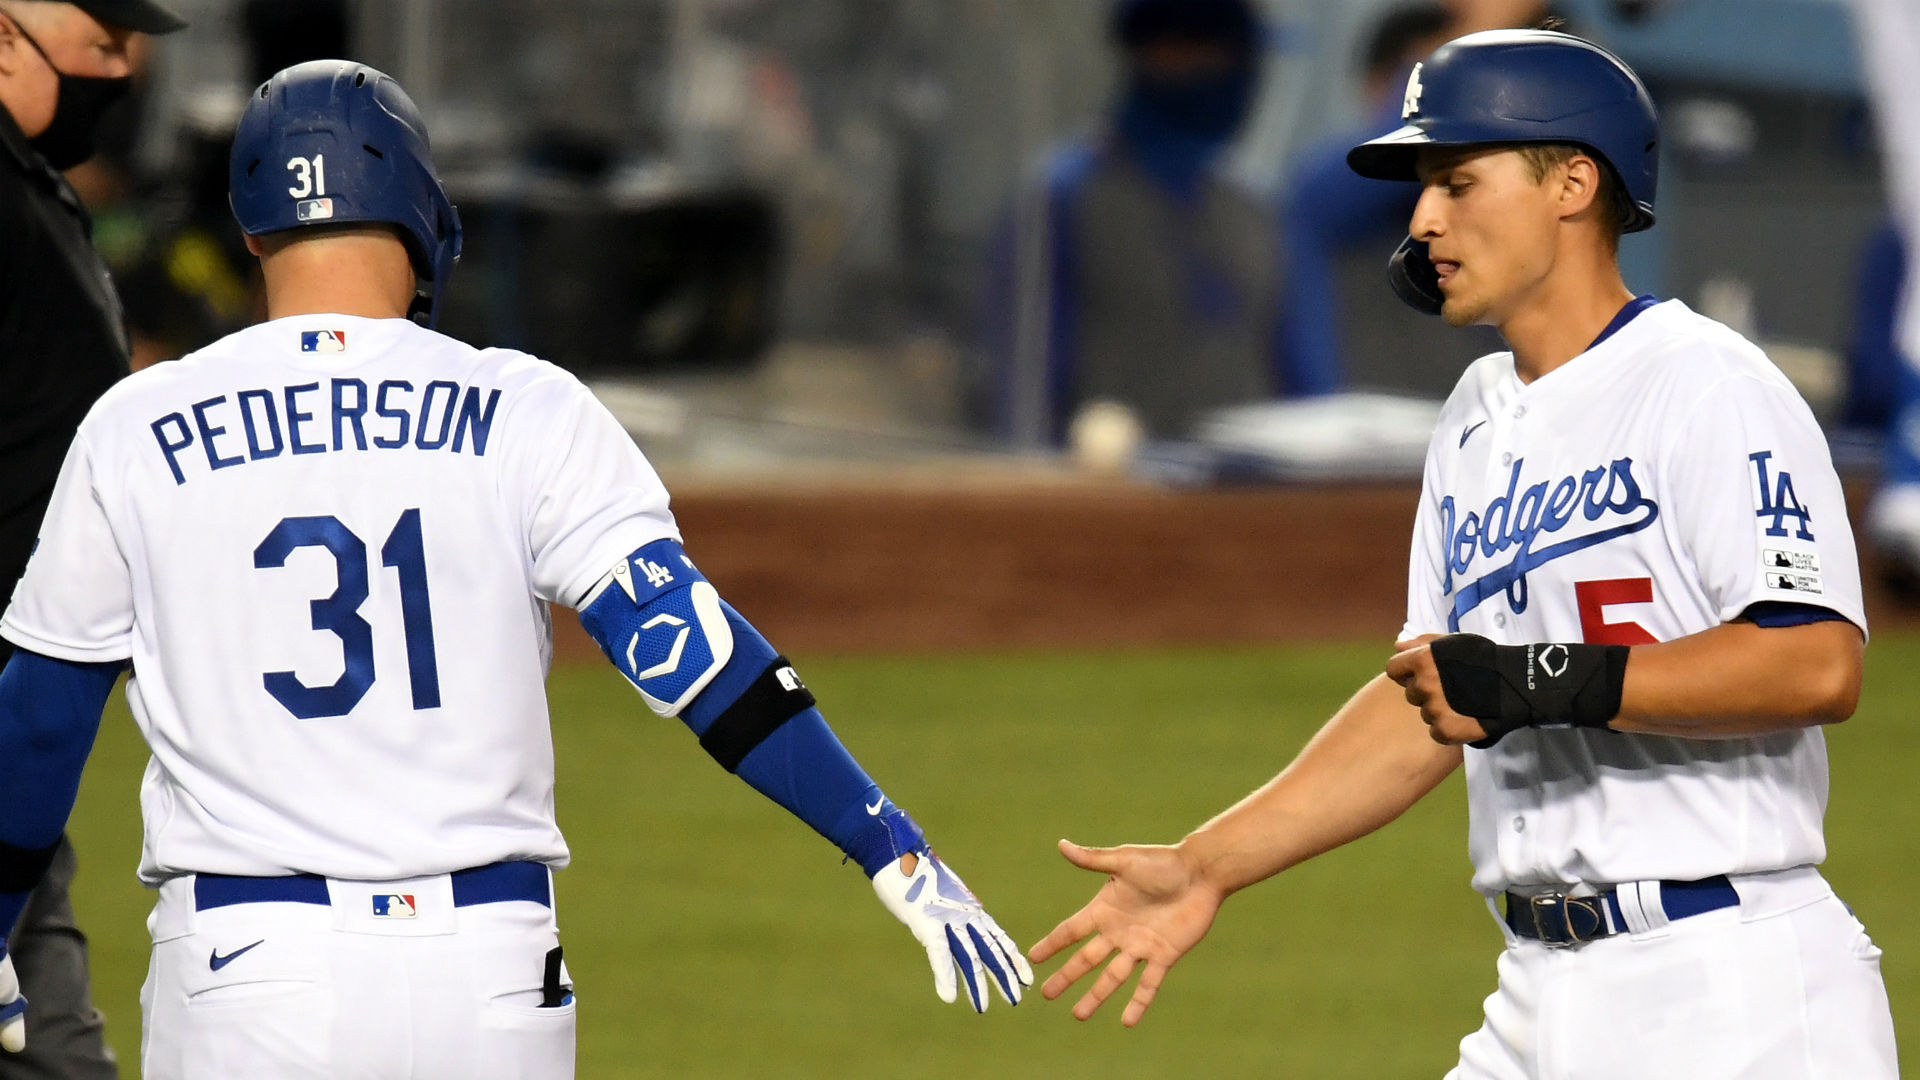 Dodgers vs. Giants score: Los Angeles takes Opening Day win over rival San Francisco